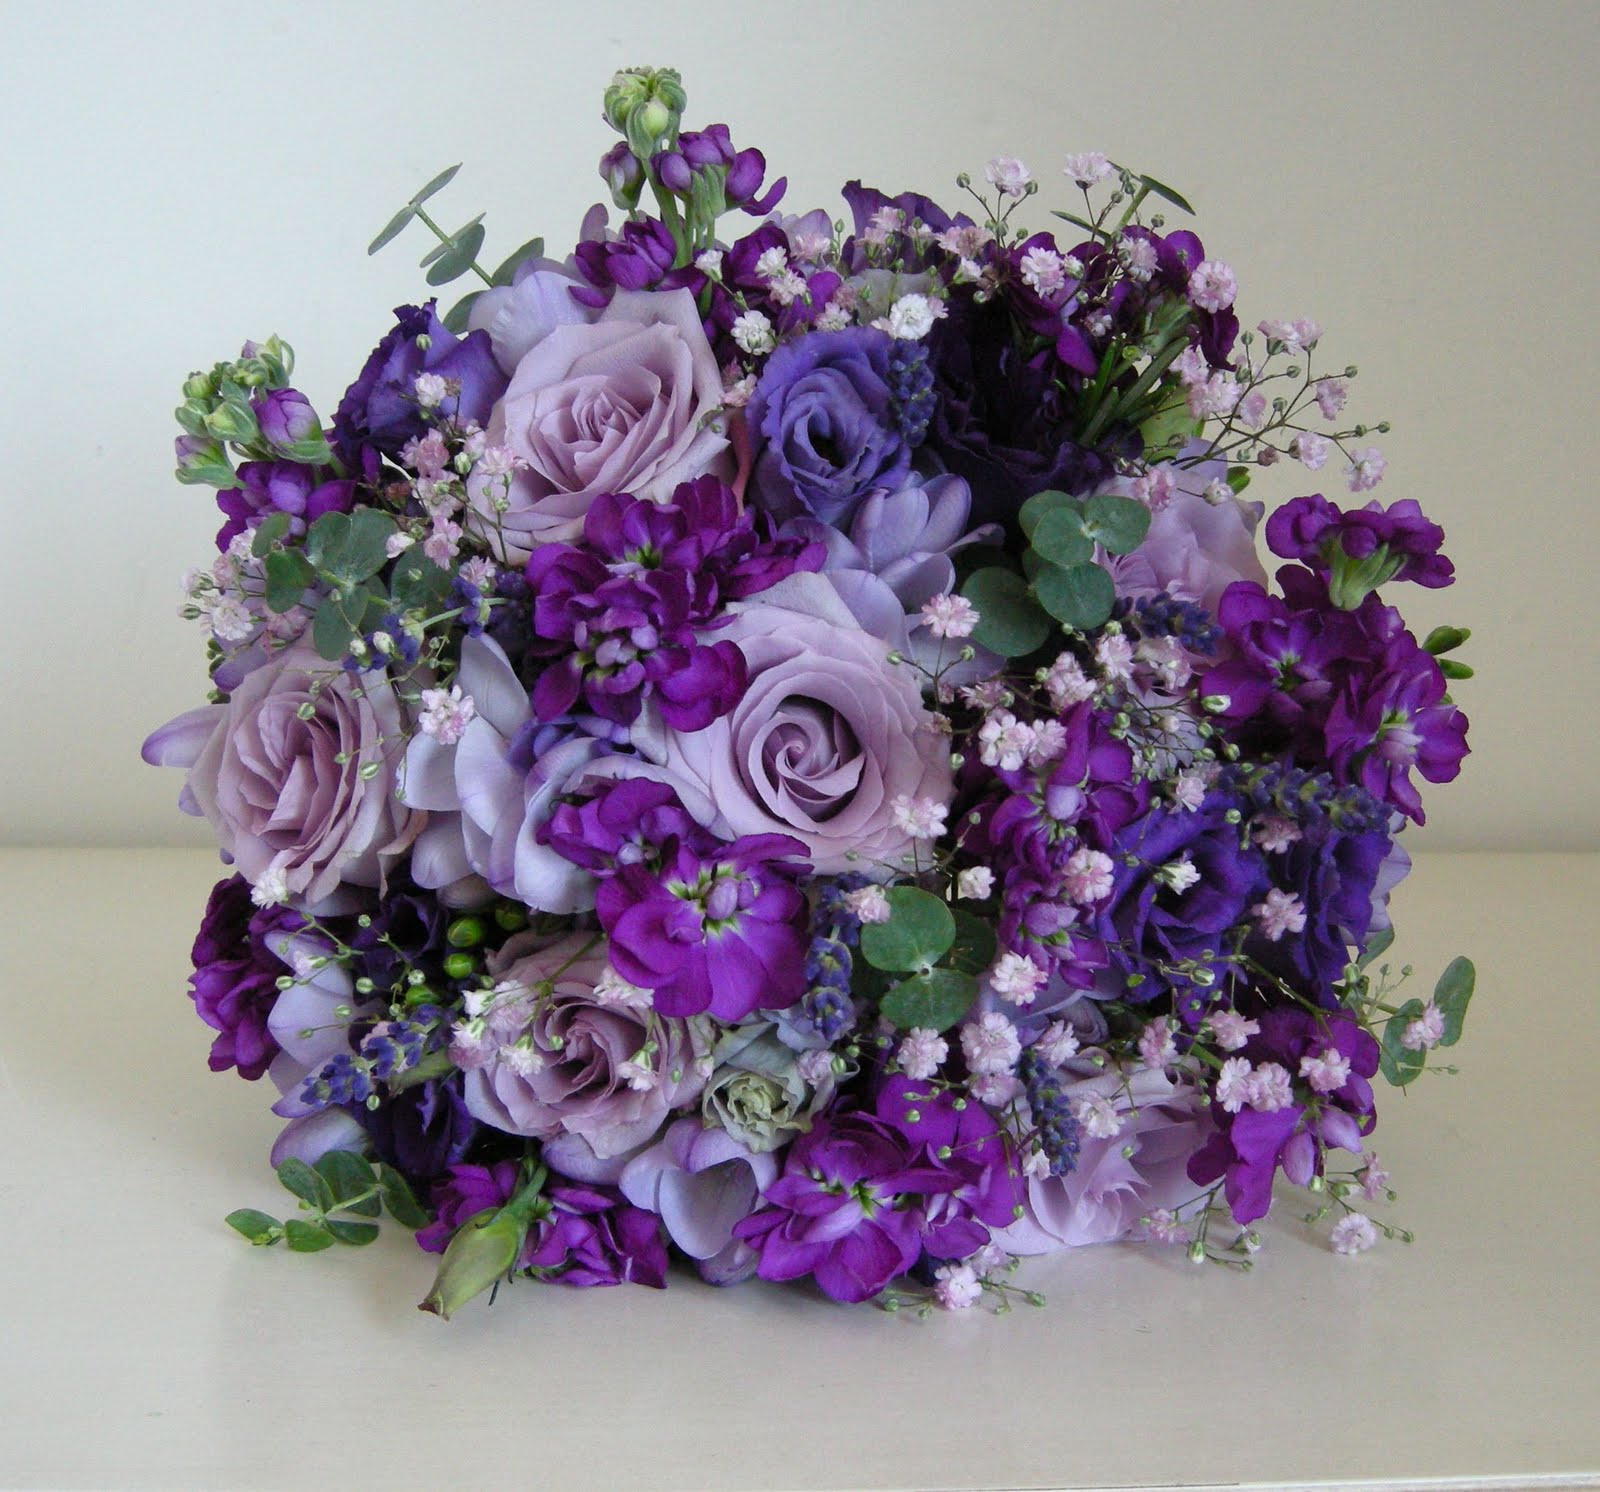 Wedding flowers blog becky 39 s country style wedding for Best flowers for wedding bouquet